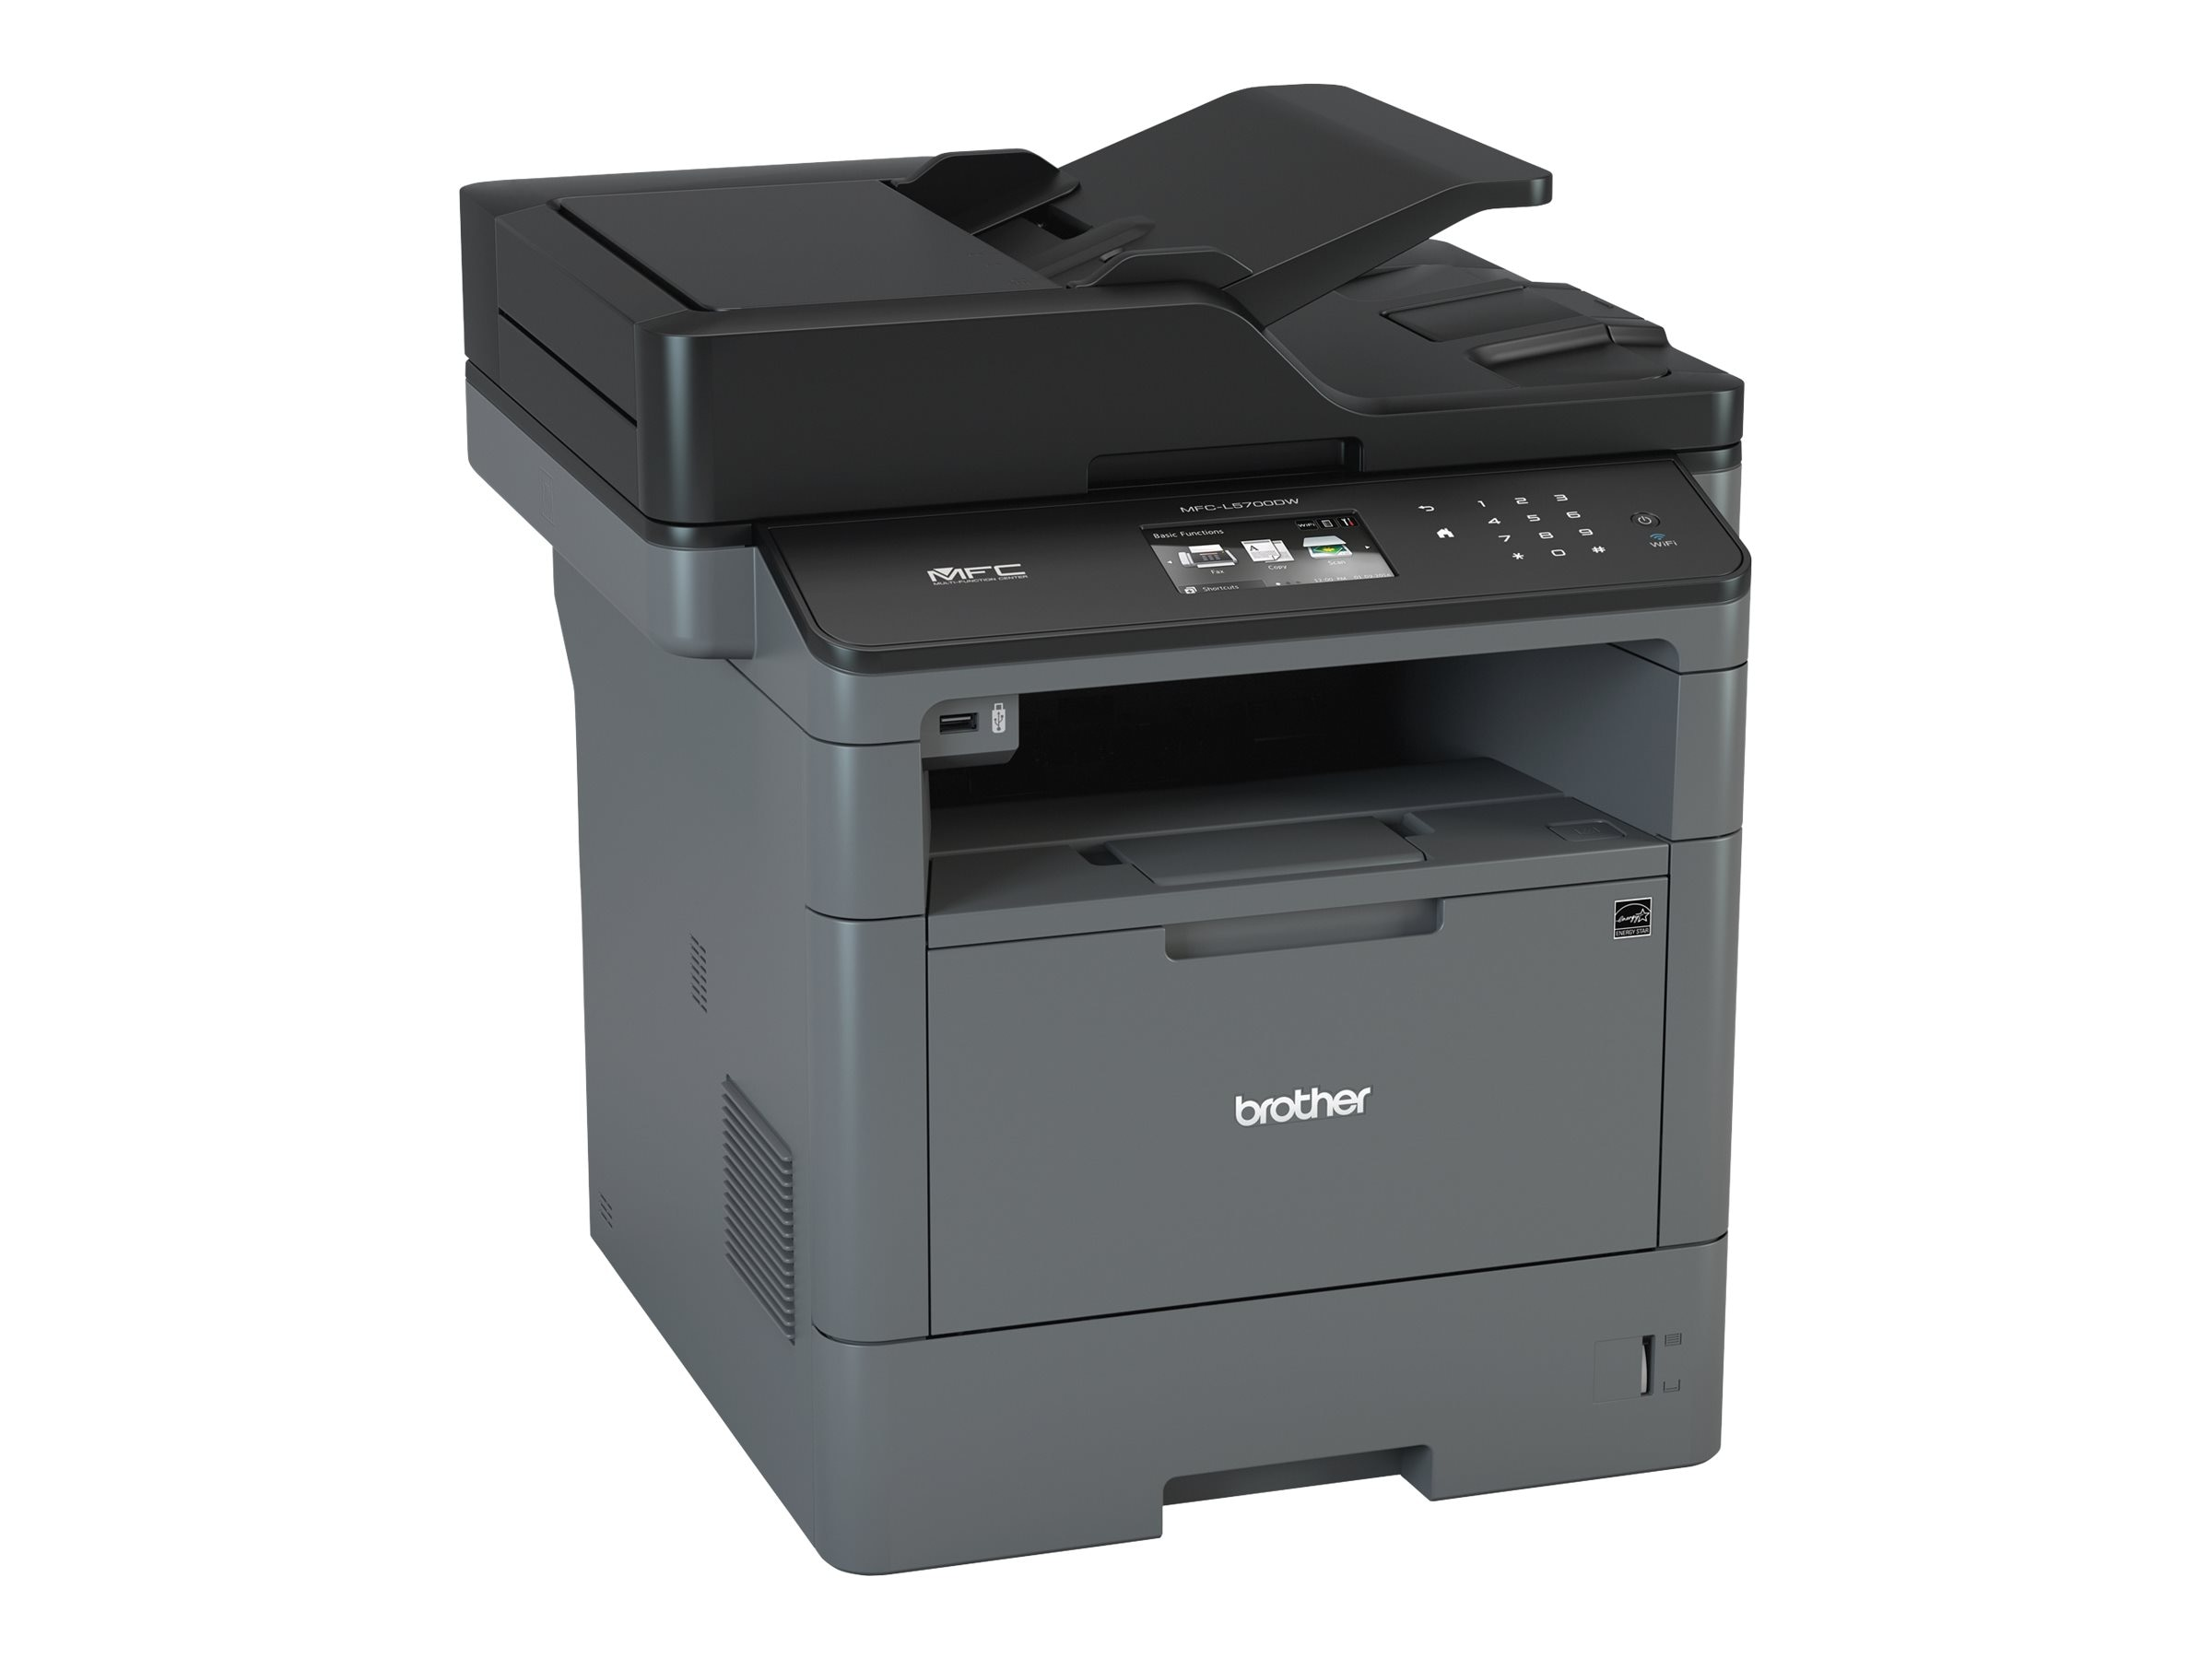 Brother MFC-L5700DW Image 3